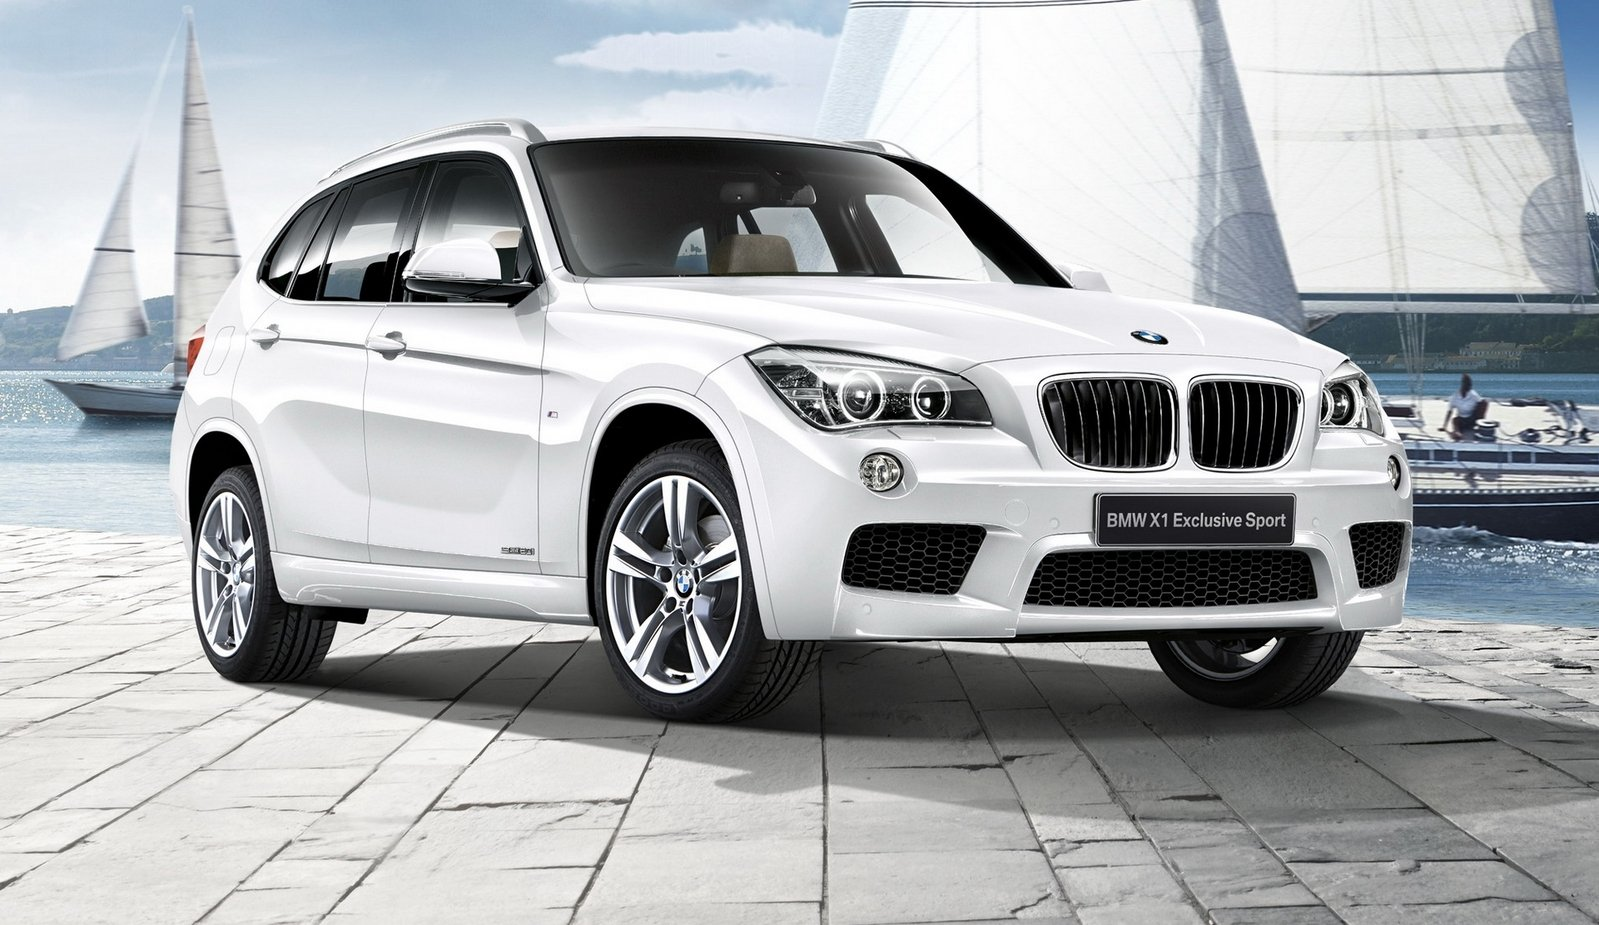 2014 Bmw X1 Exclusive Sport Review Top Speed